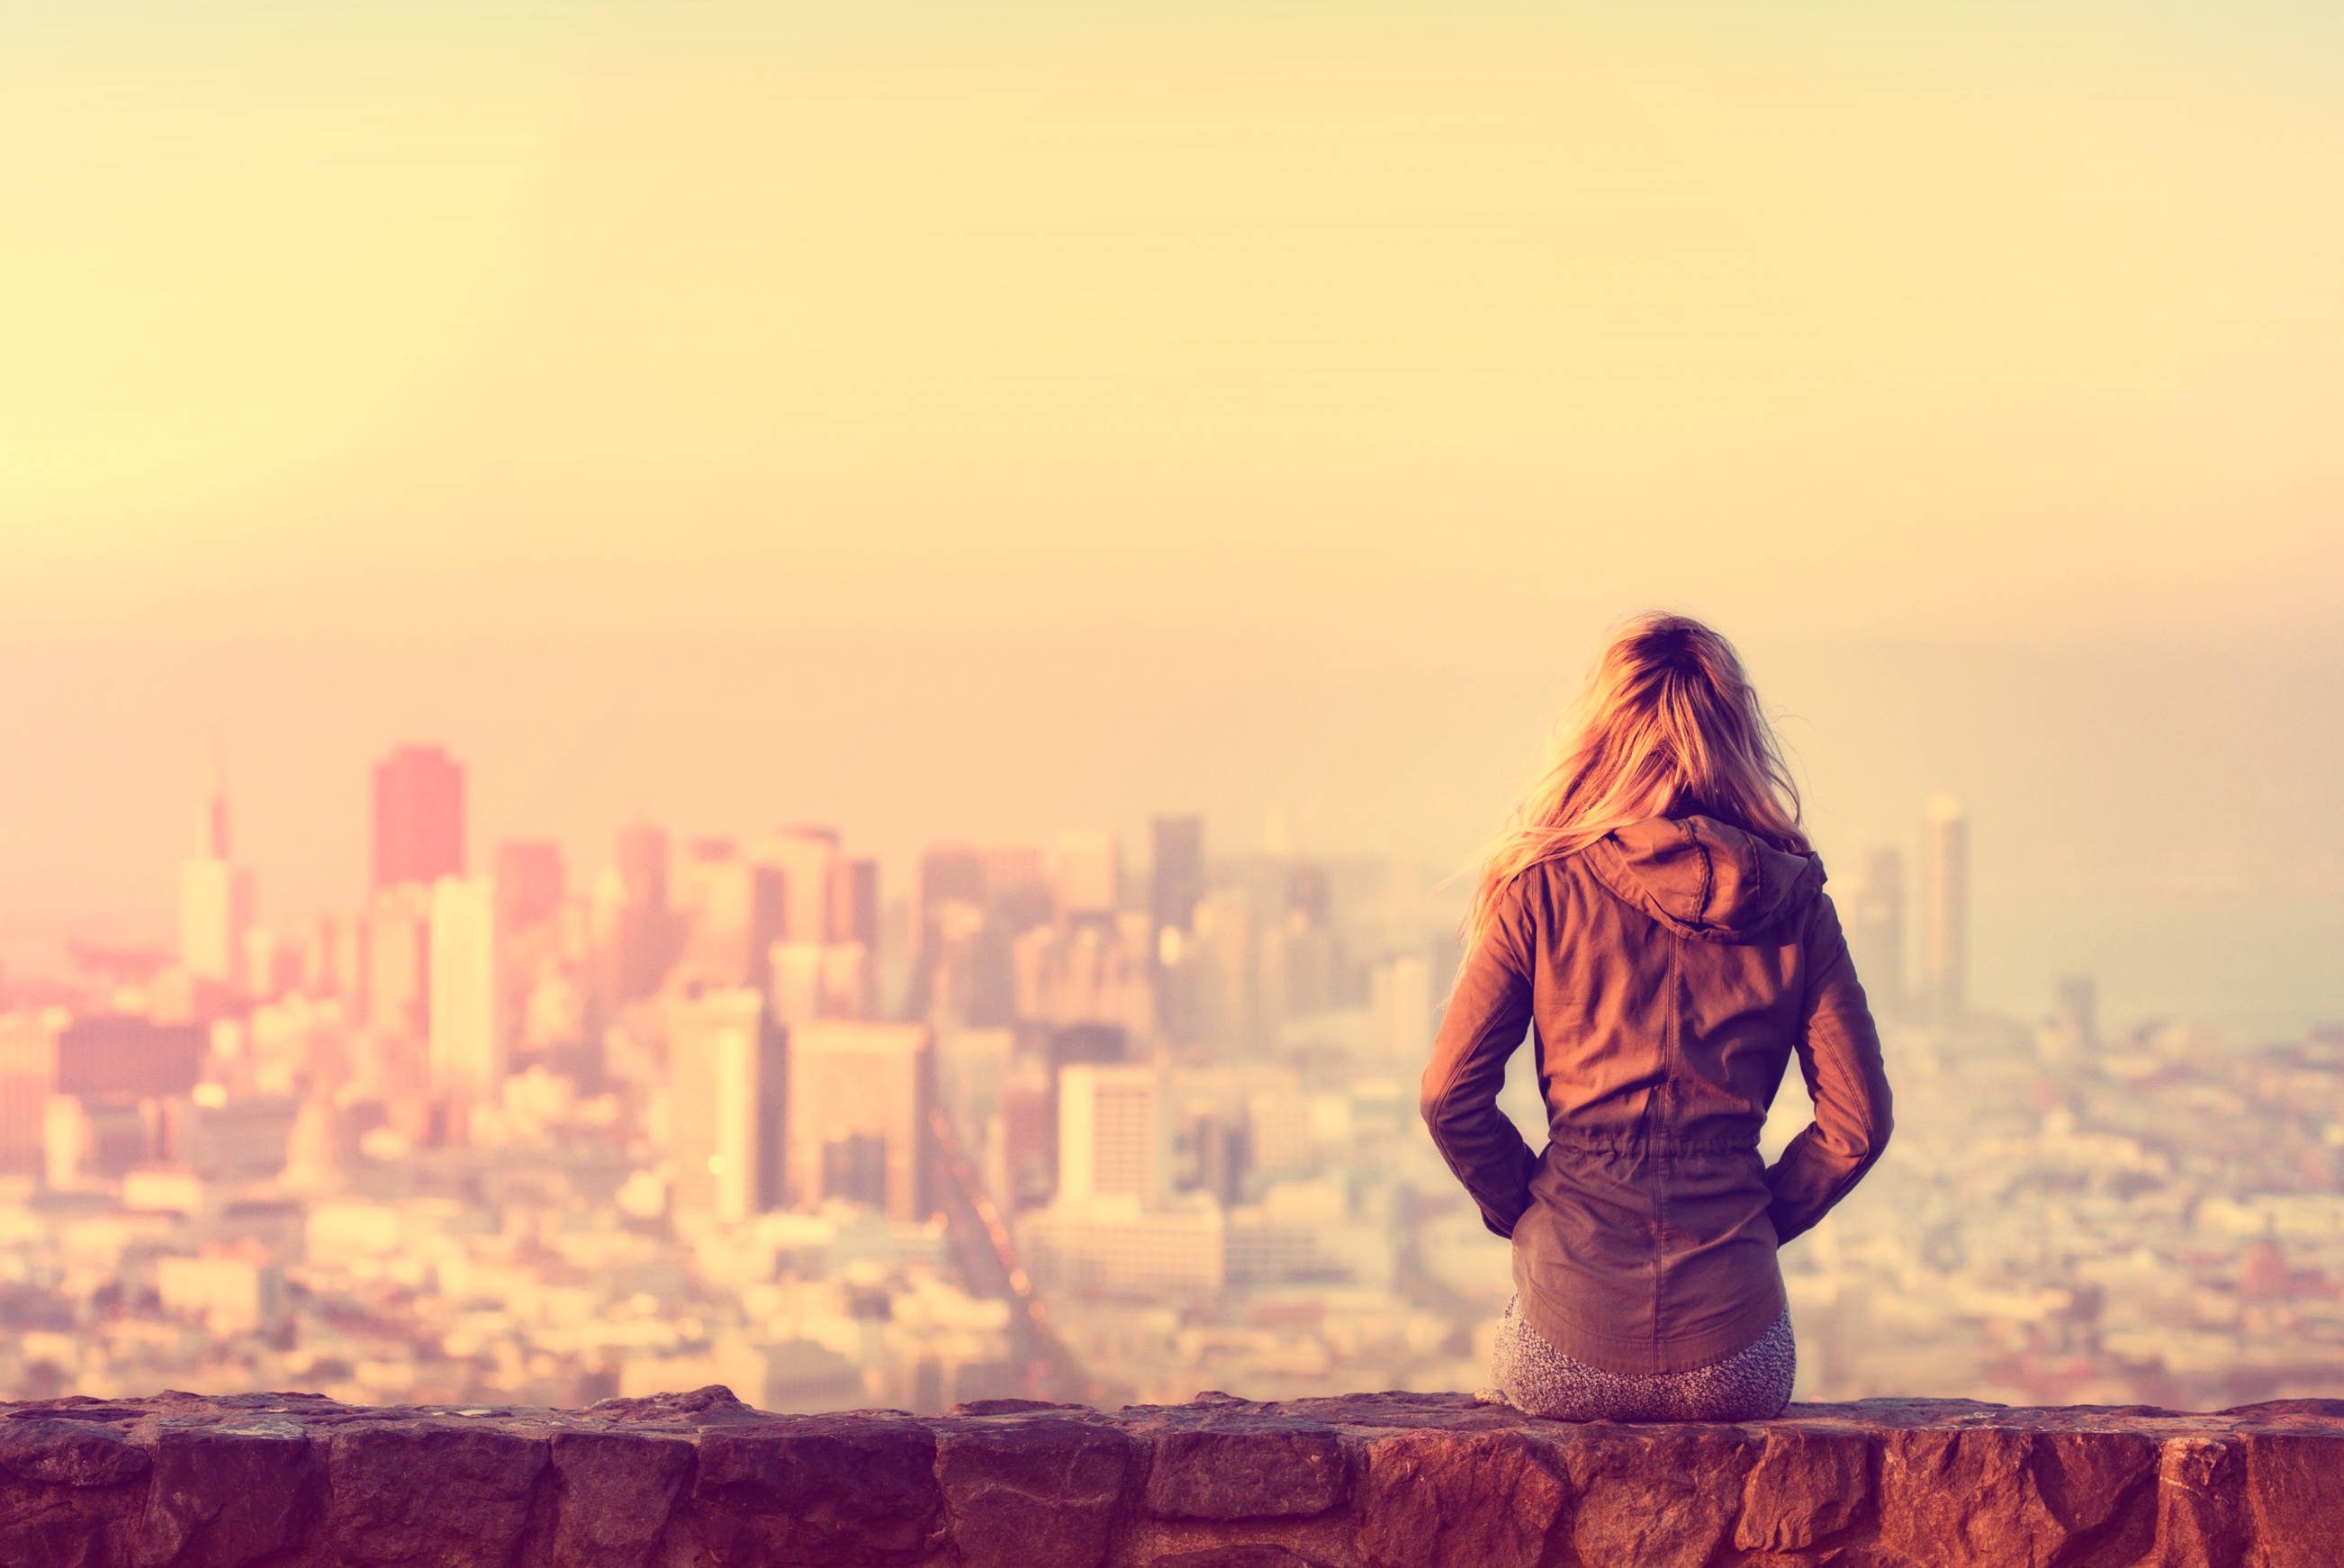 Hazy vintage looks - girl looking over the city photo